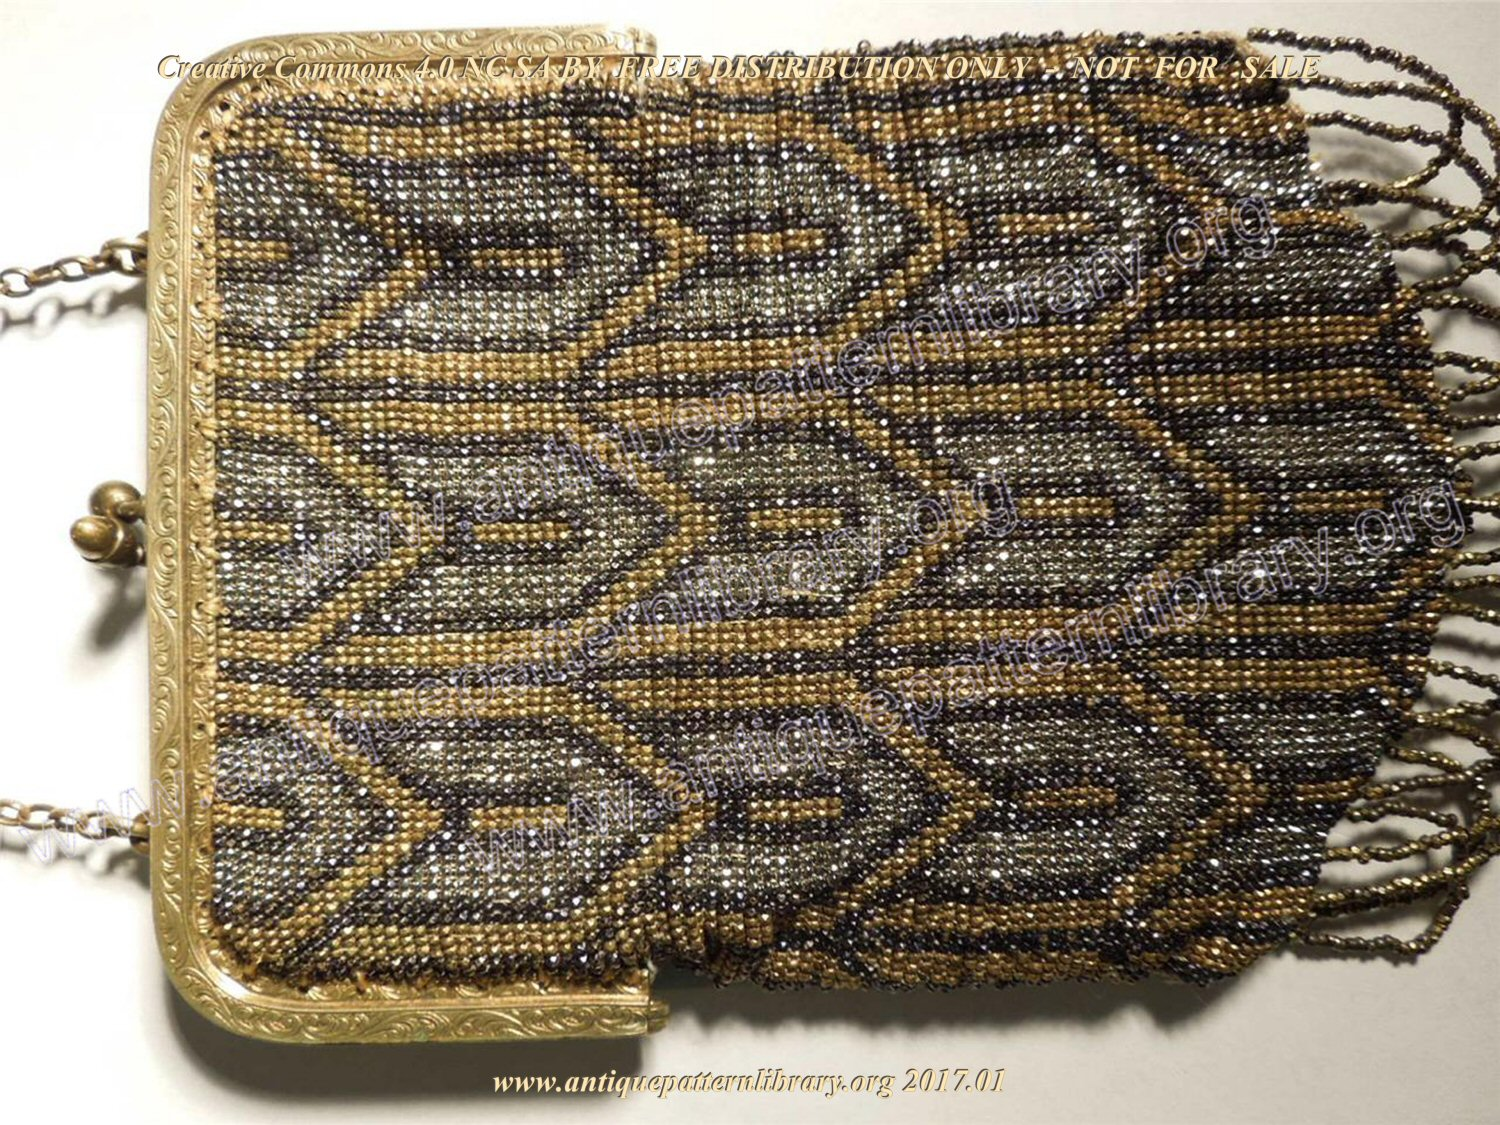 G-GT002 Art-Deco-Bag-France-Mesh-Beads-Purse-Gold-Silver-Black-Geometrical-Fringe-Chain-121877276145